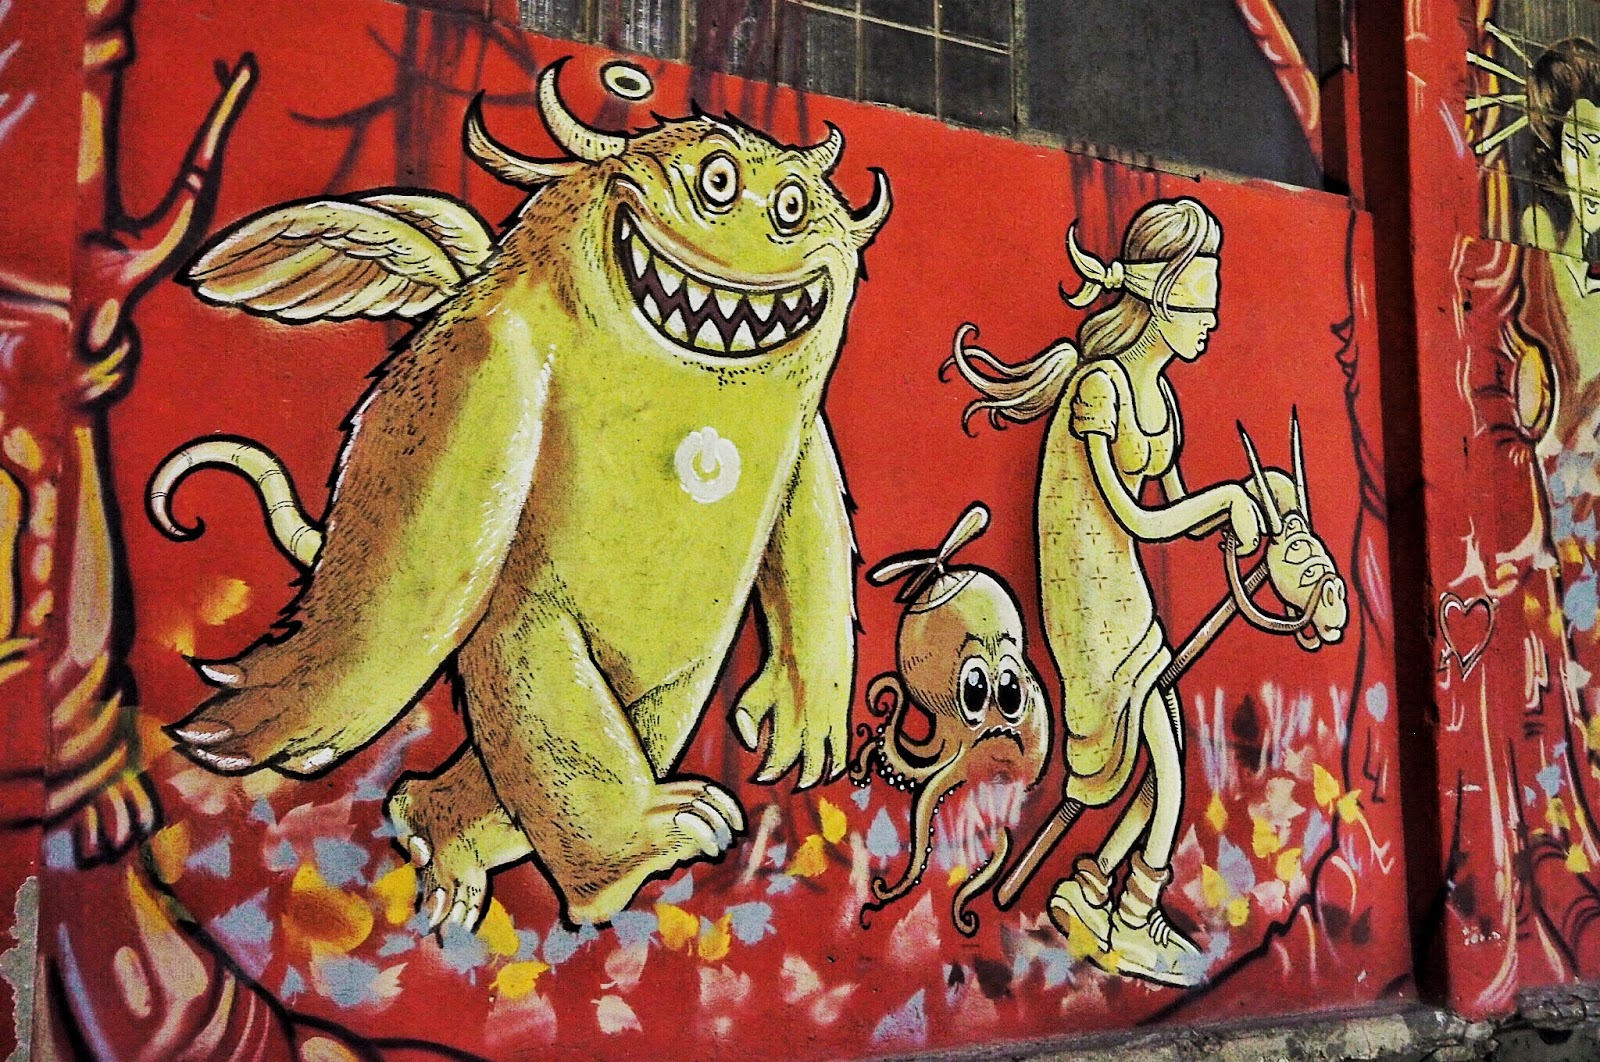 Monster street graffiti art at LX Factory Lisbon